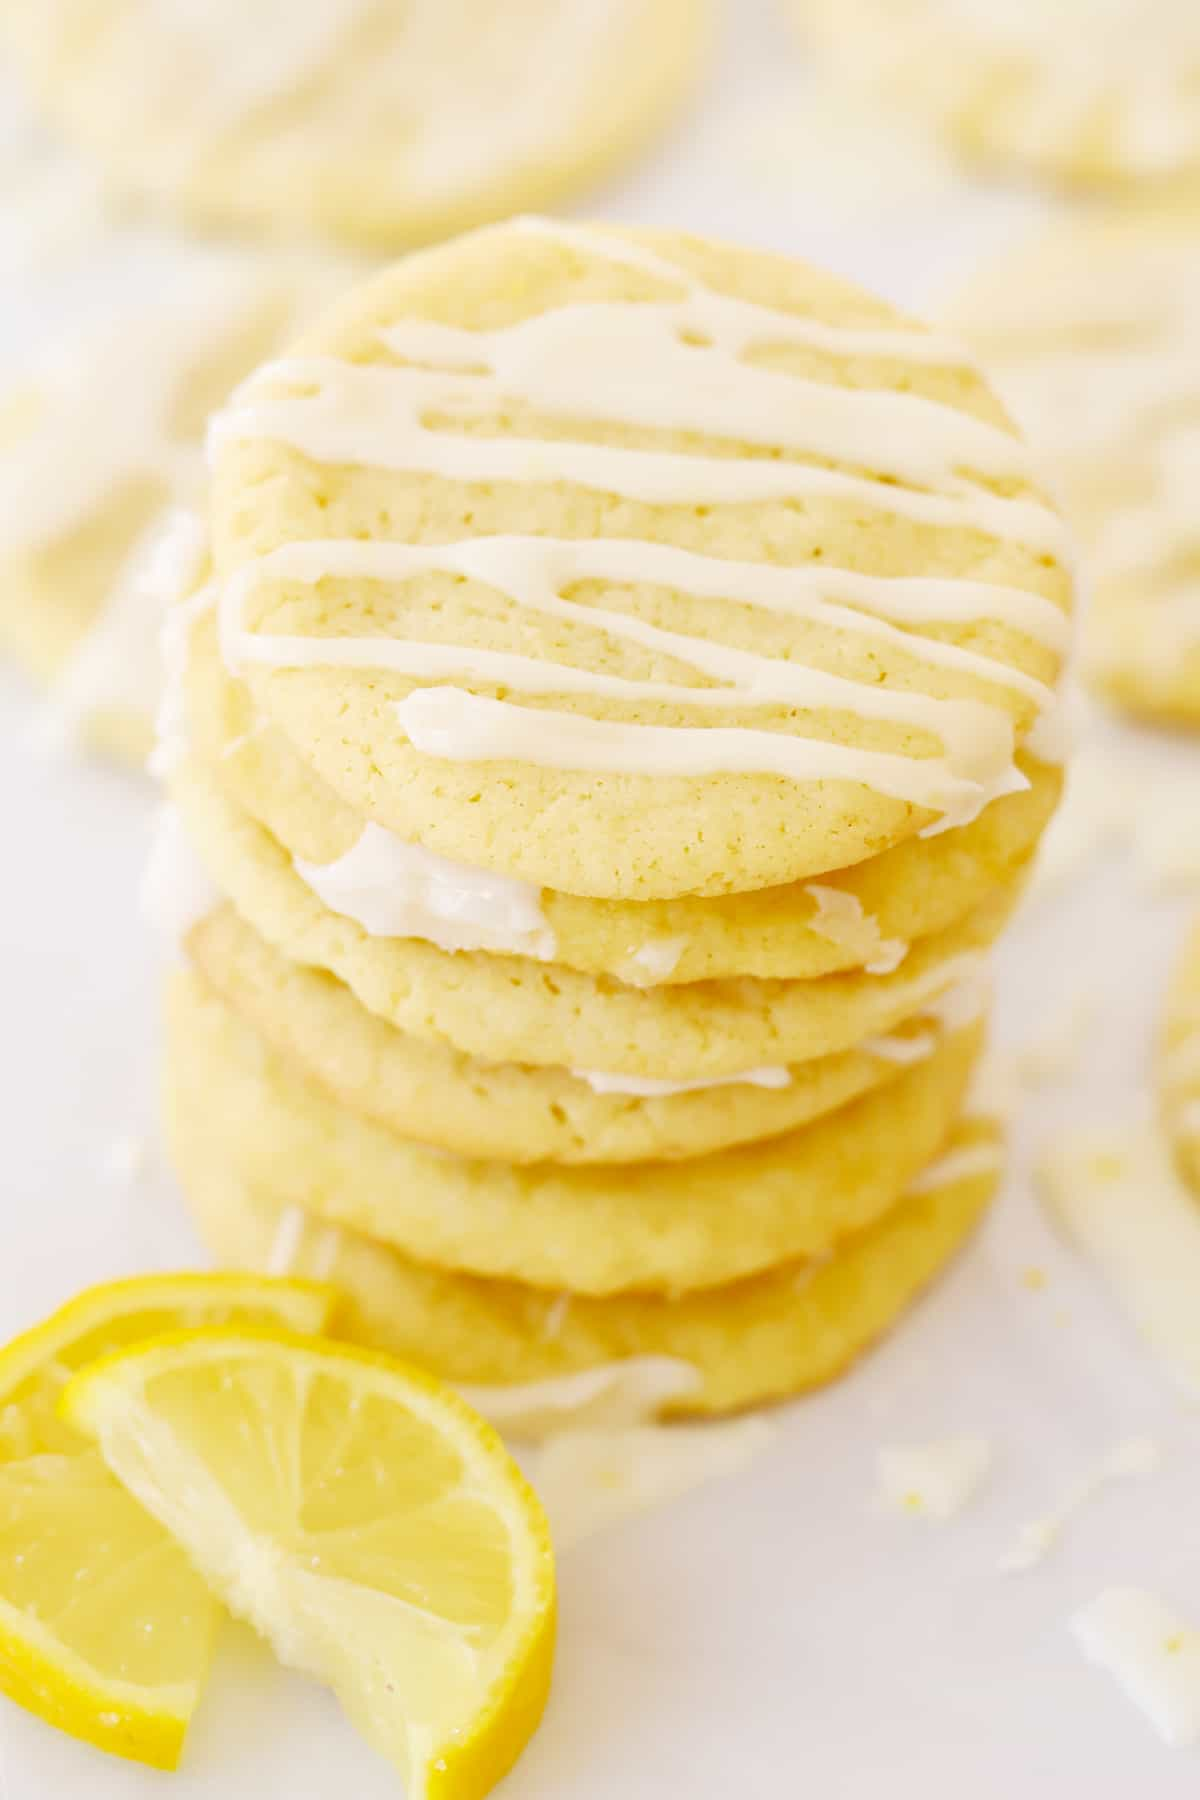 A stack of Glazed Lemon Cookies on a tray.